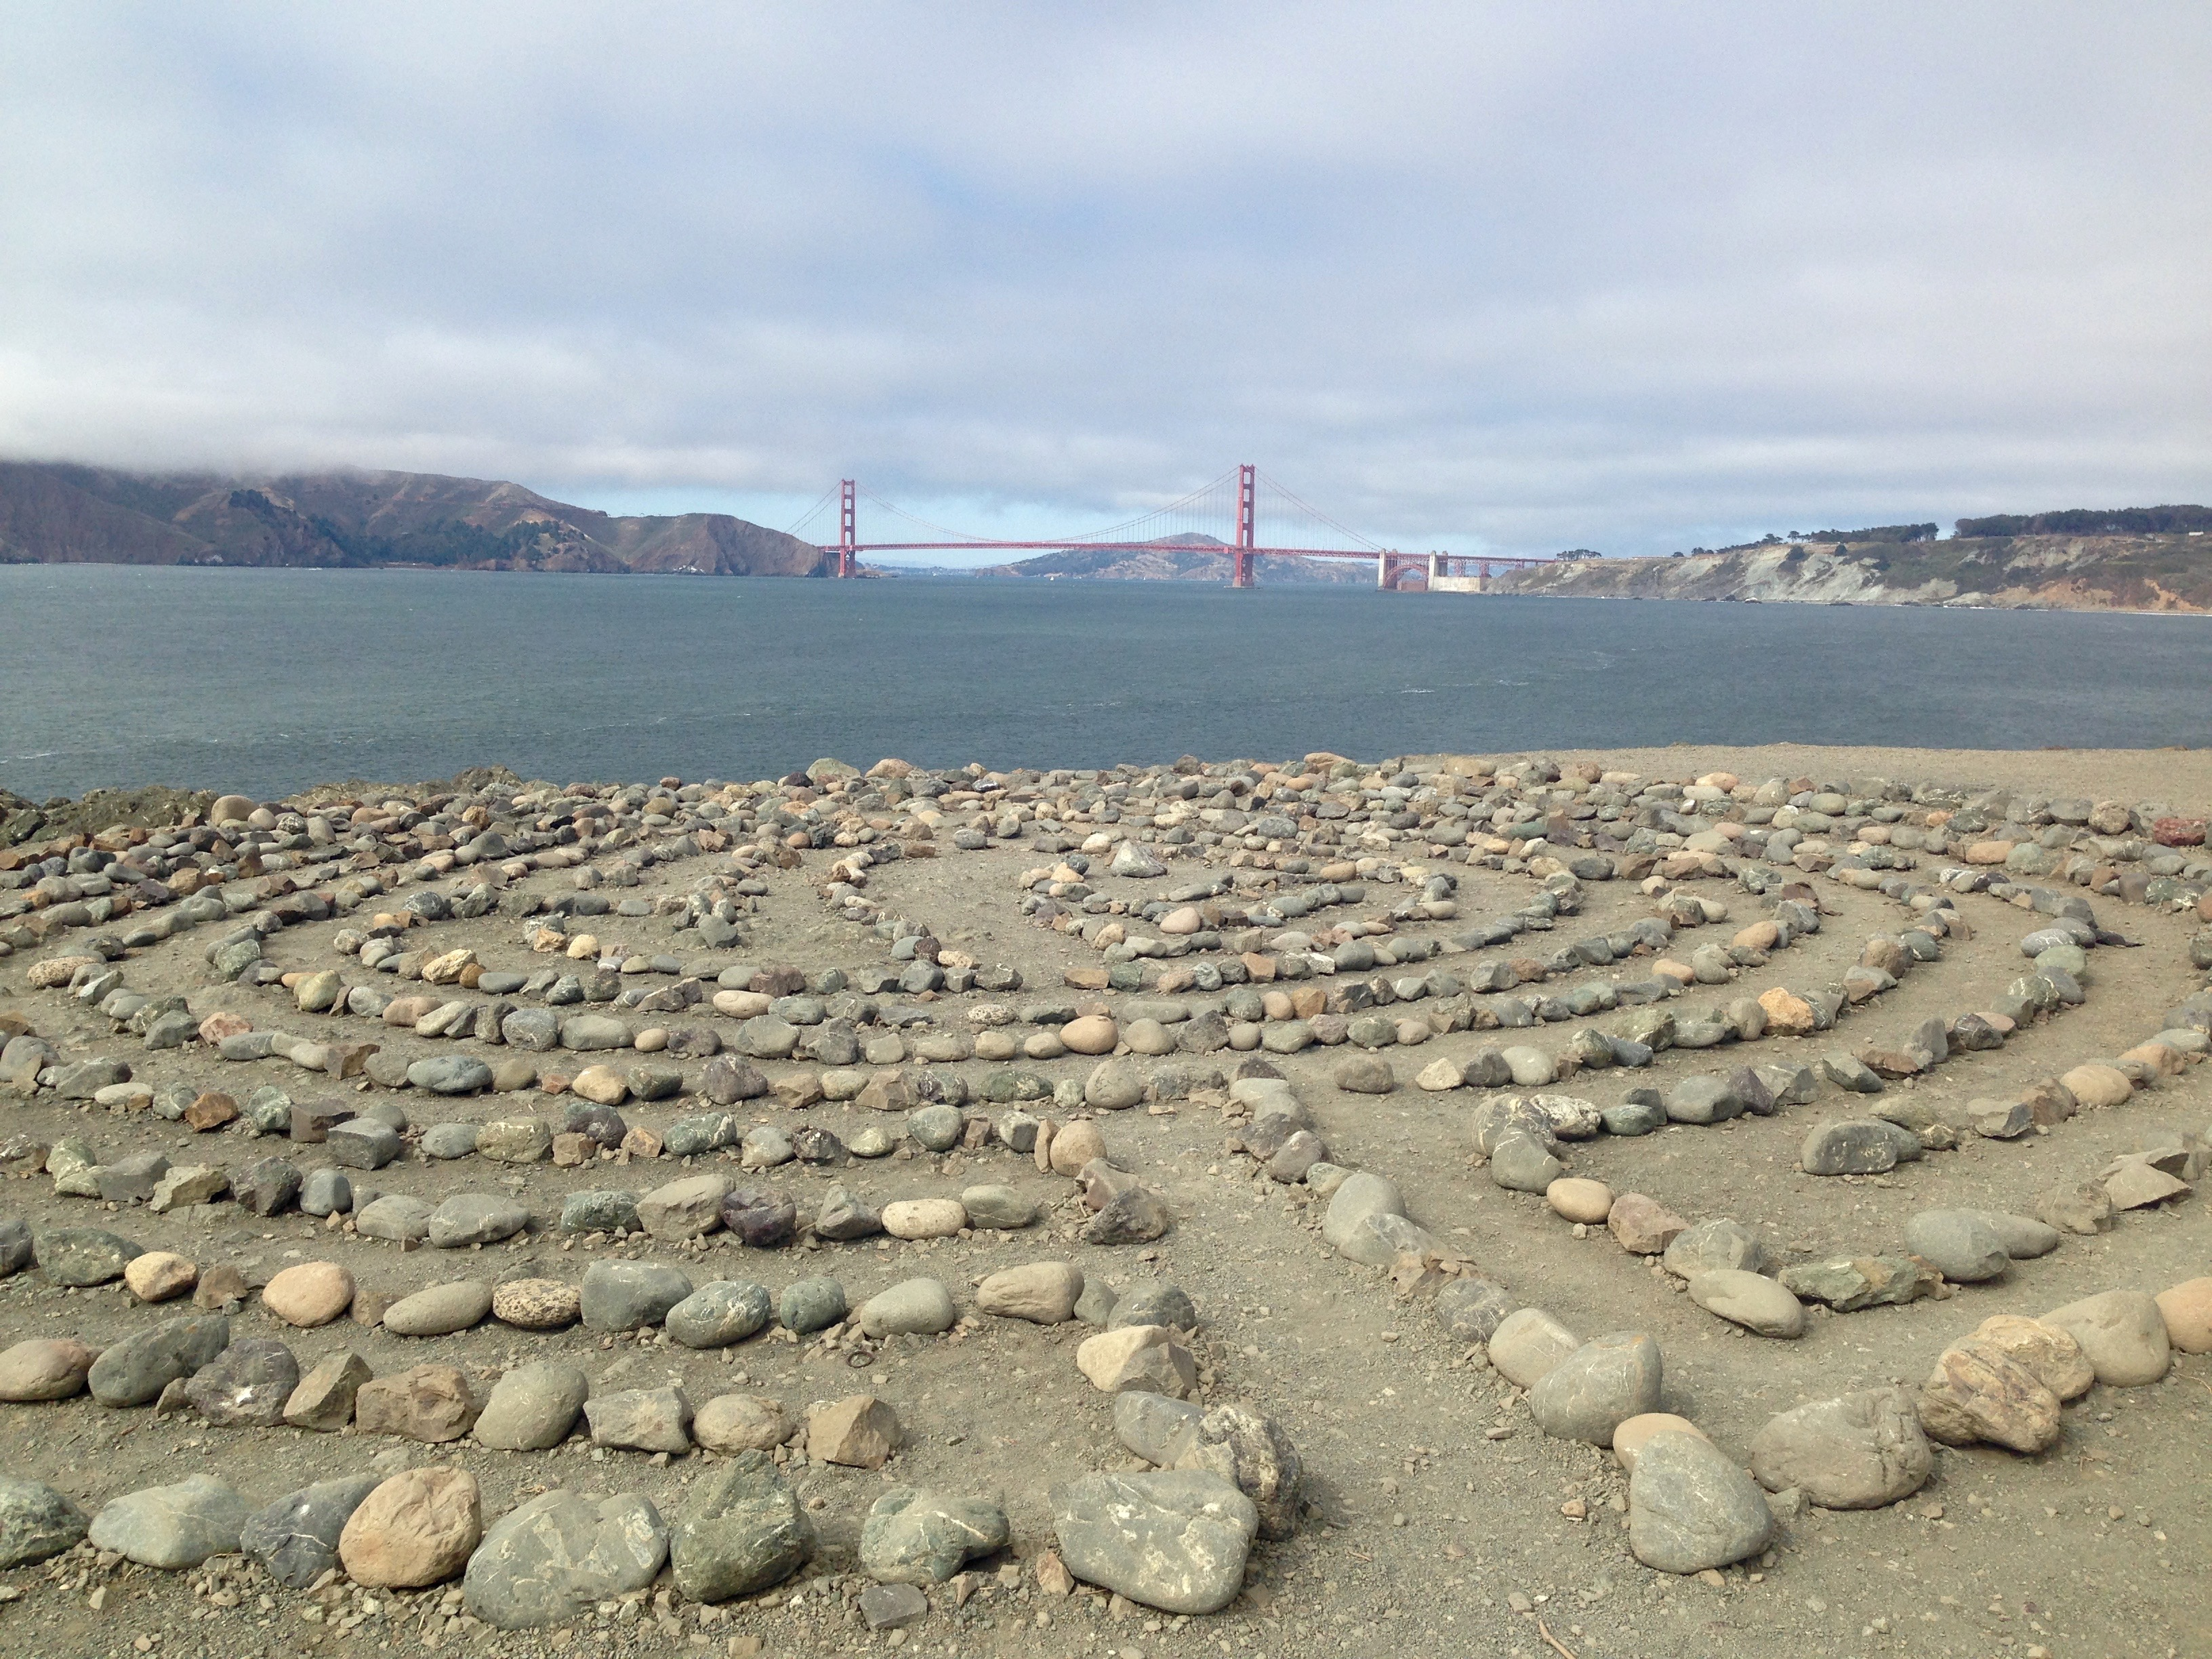 Walking the stone-guided paths of this labyrinth—with the waves crashing below—is the best type of meditation.